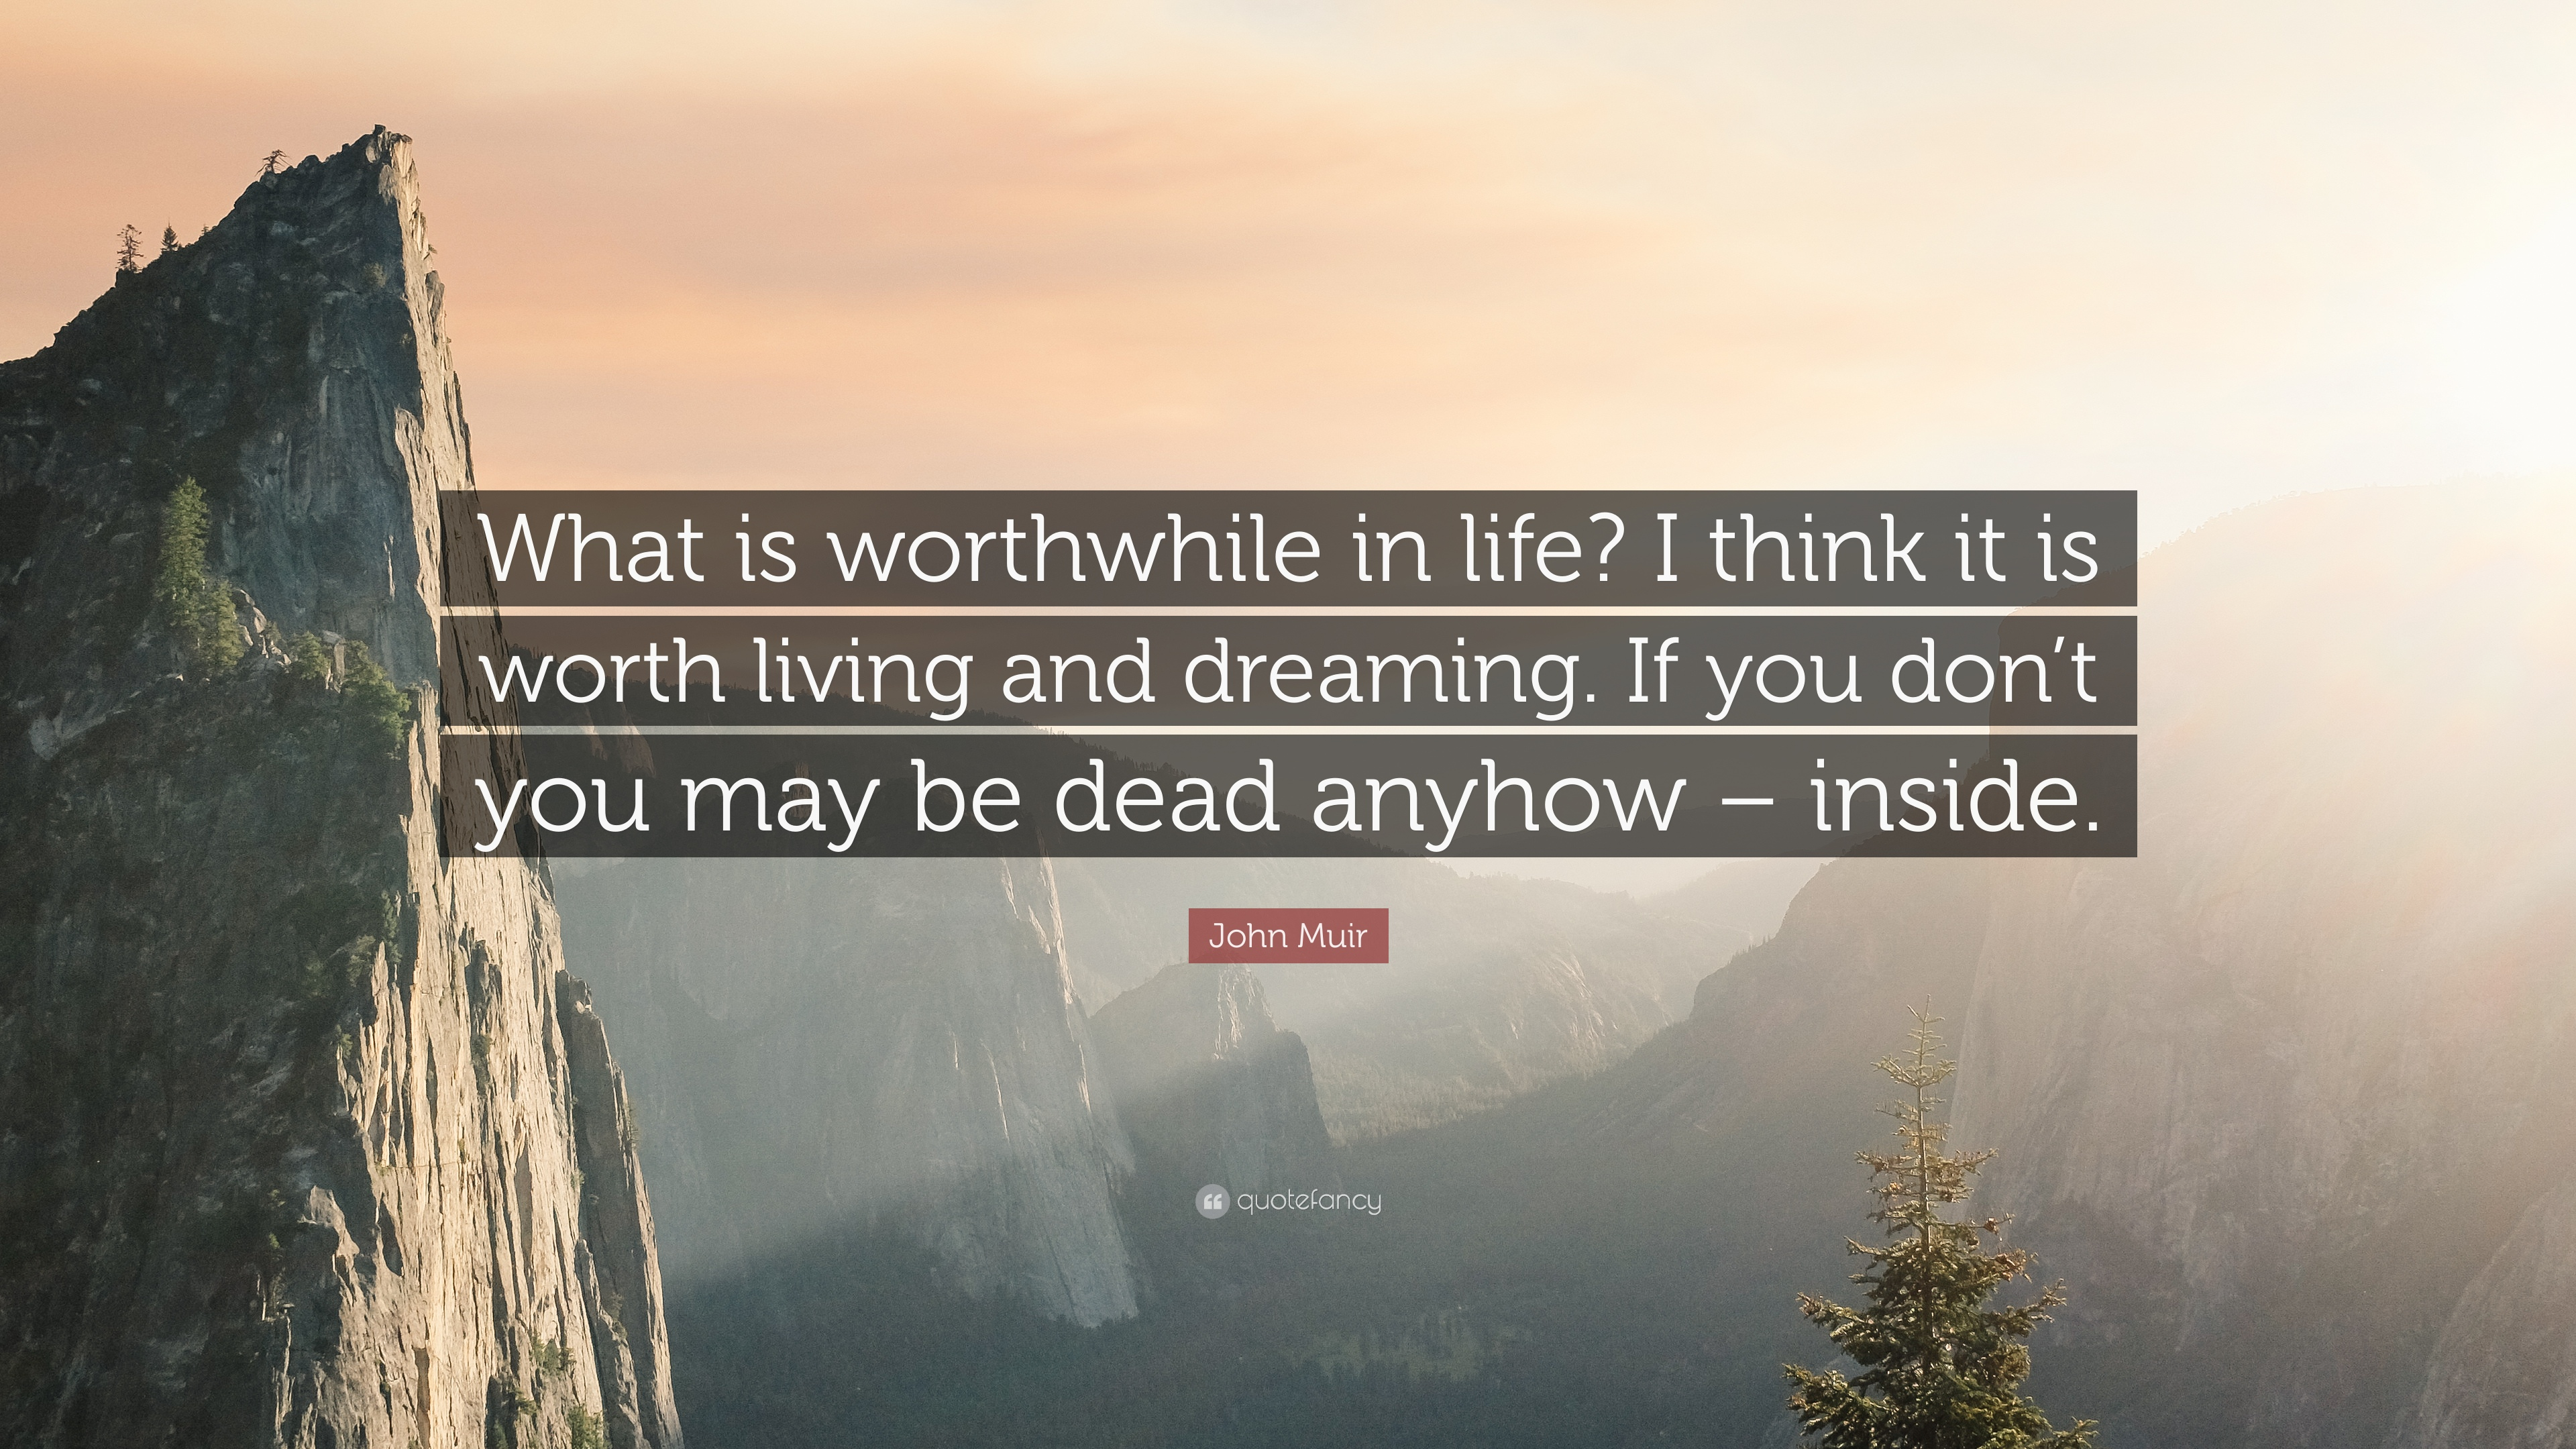 life worth living for quotes henry thoreau